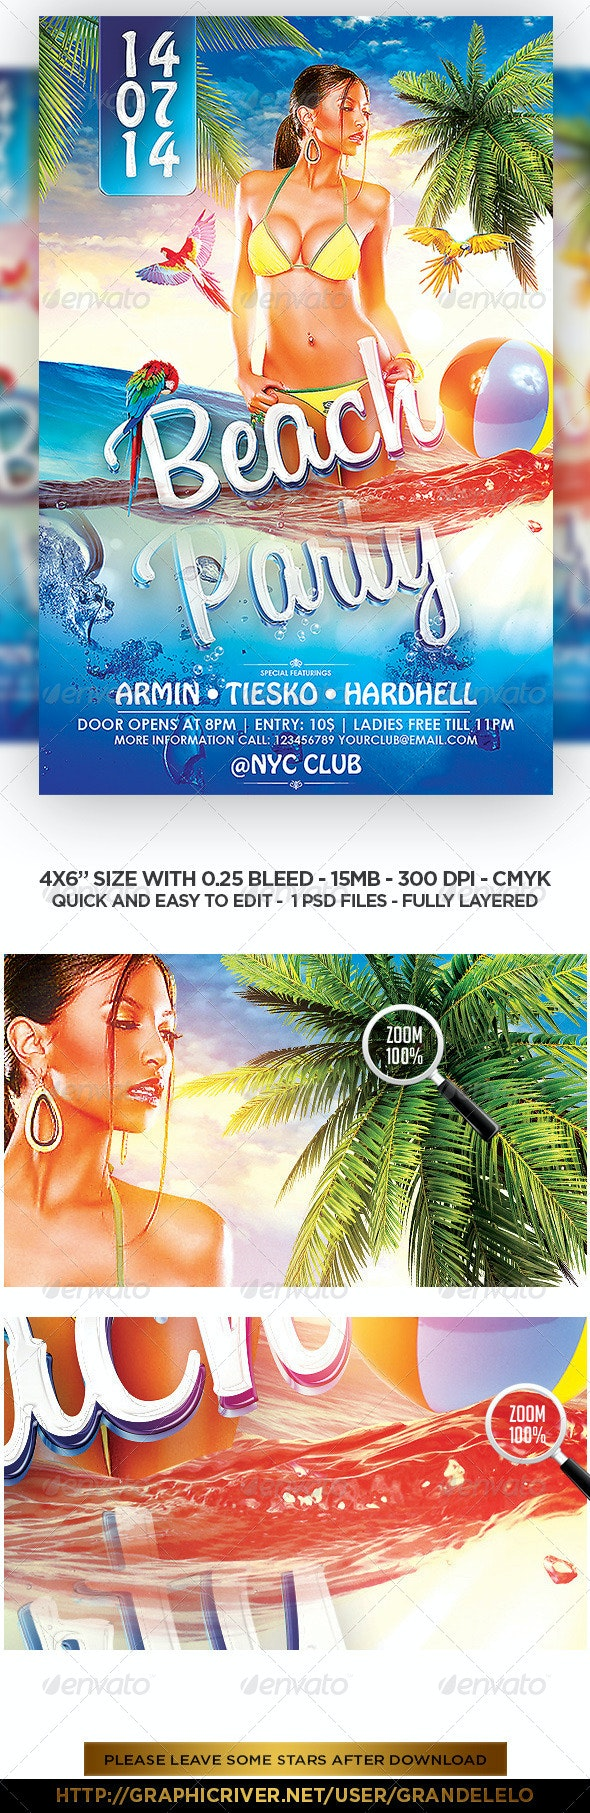 Beach Party - Under Water Flyer Template - Clubs & Parties Events